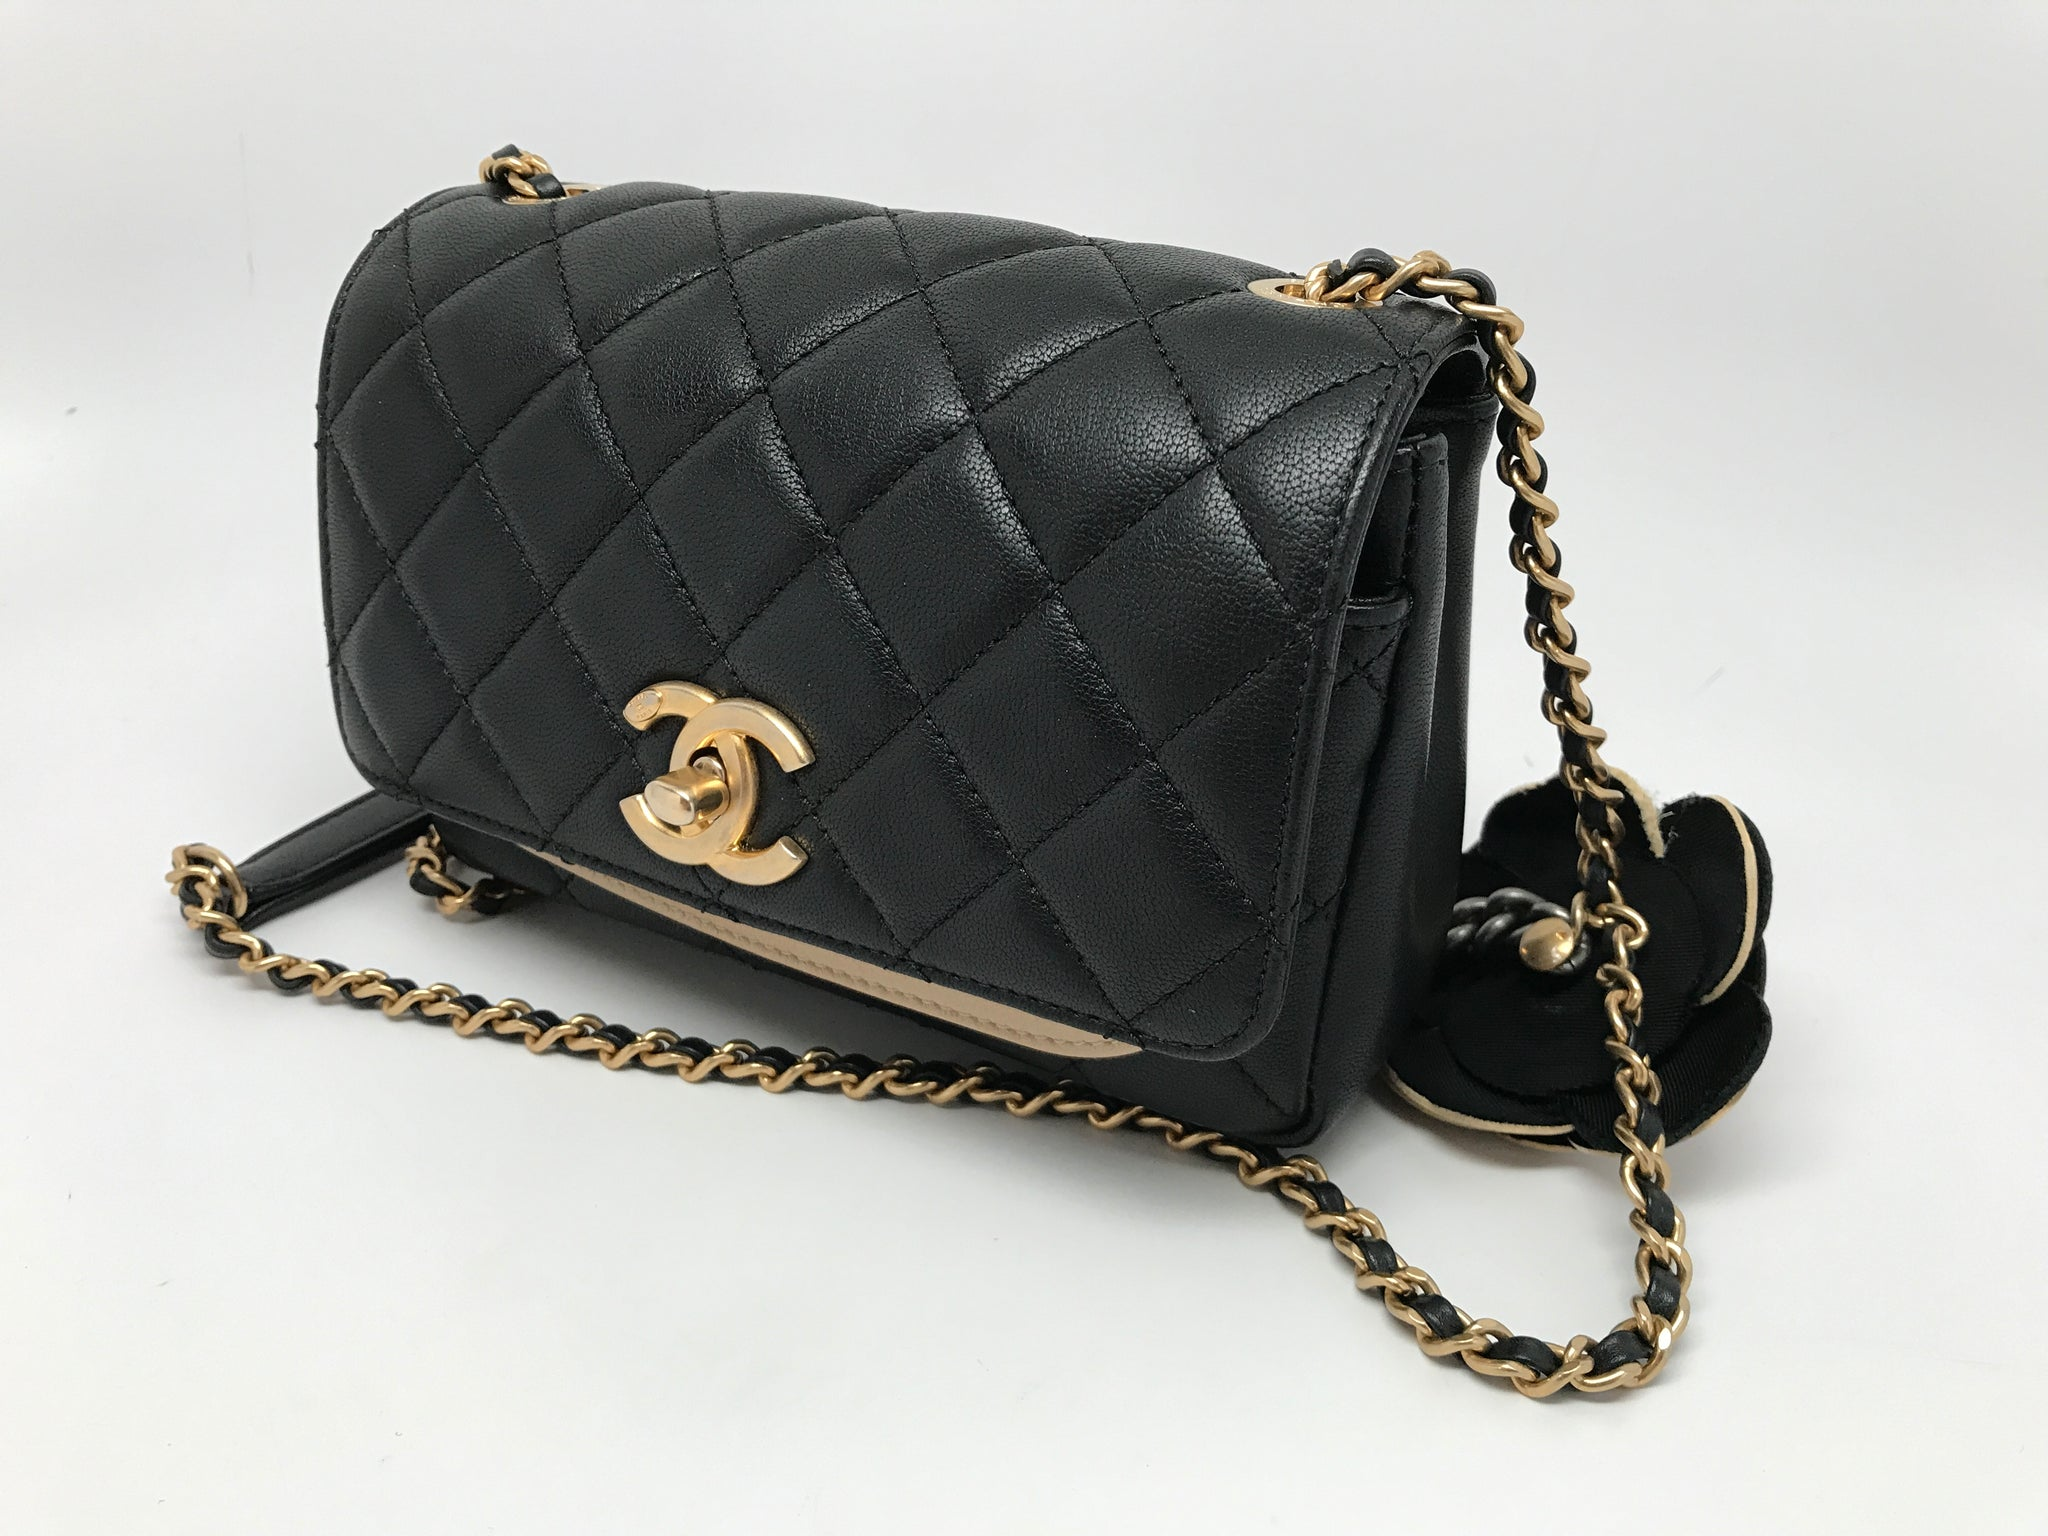 CHANEL CLASSIC CAMELIA FLAP BAG - BLACK